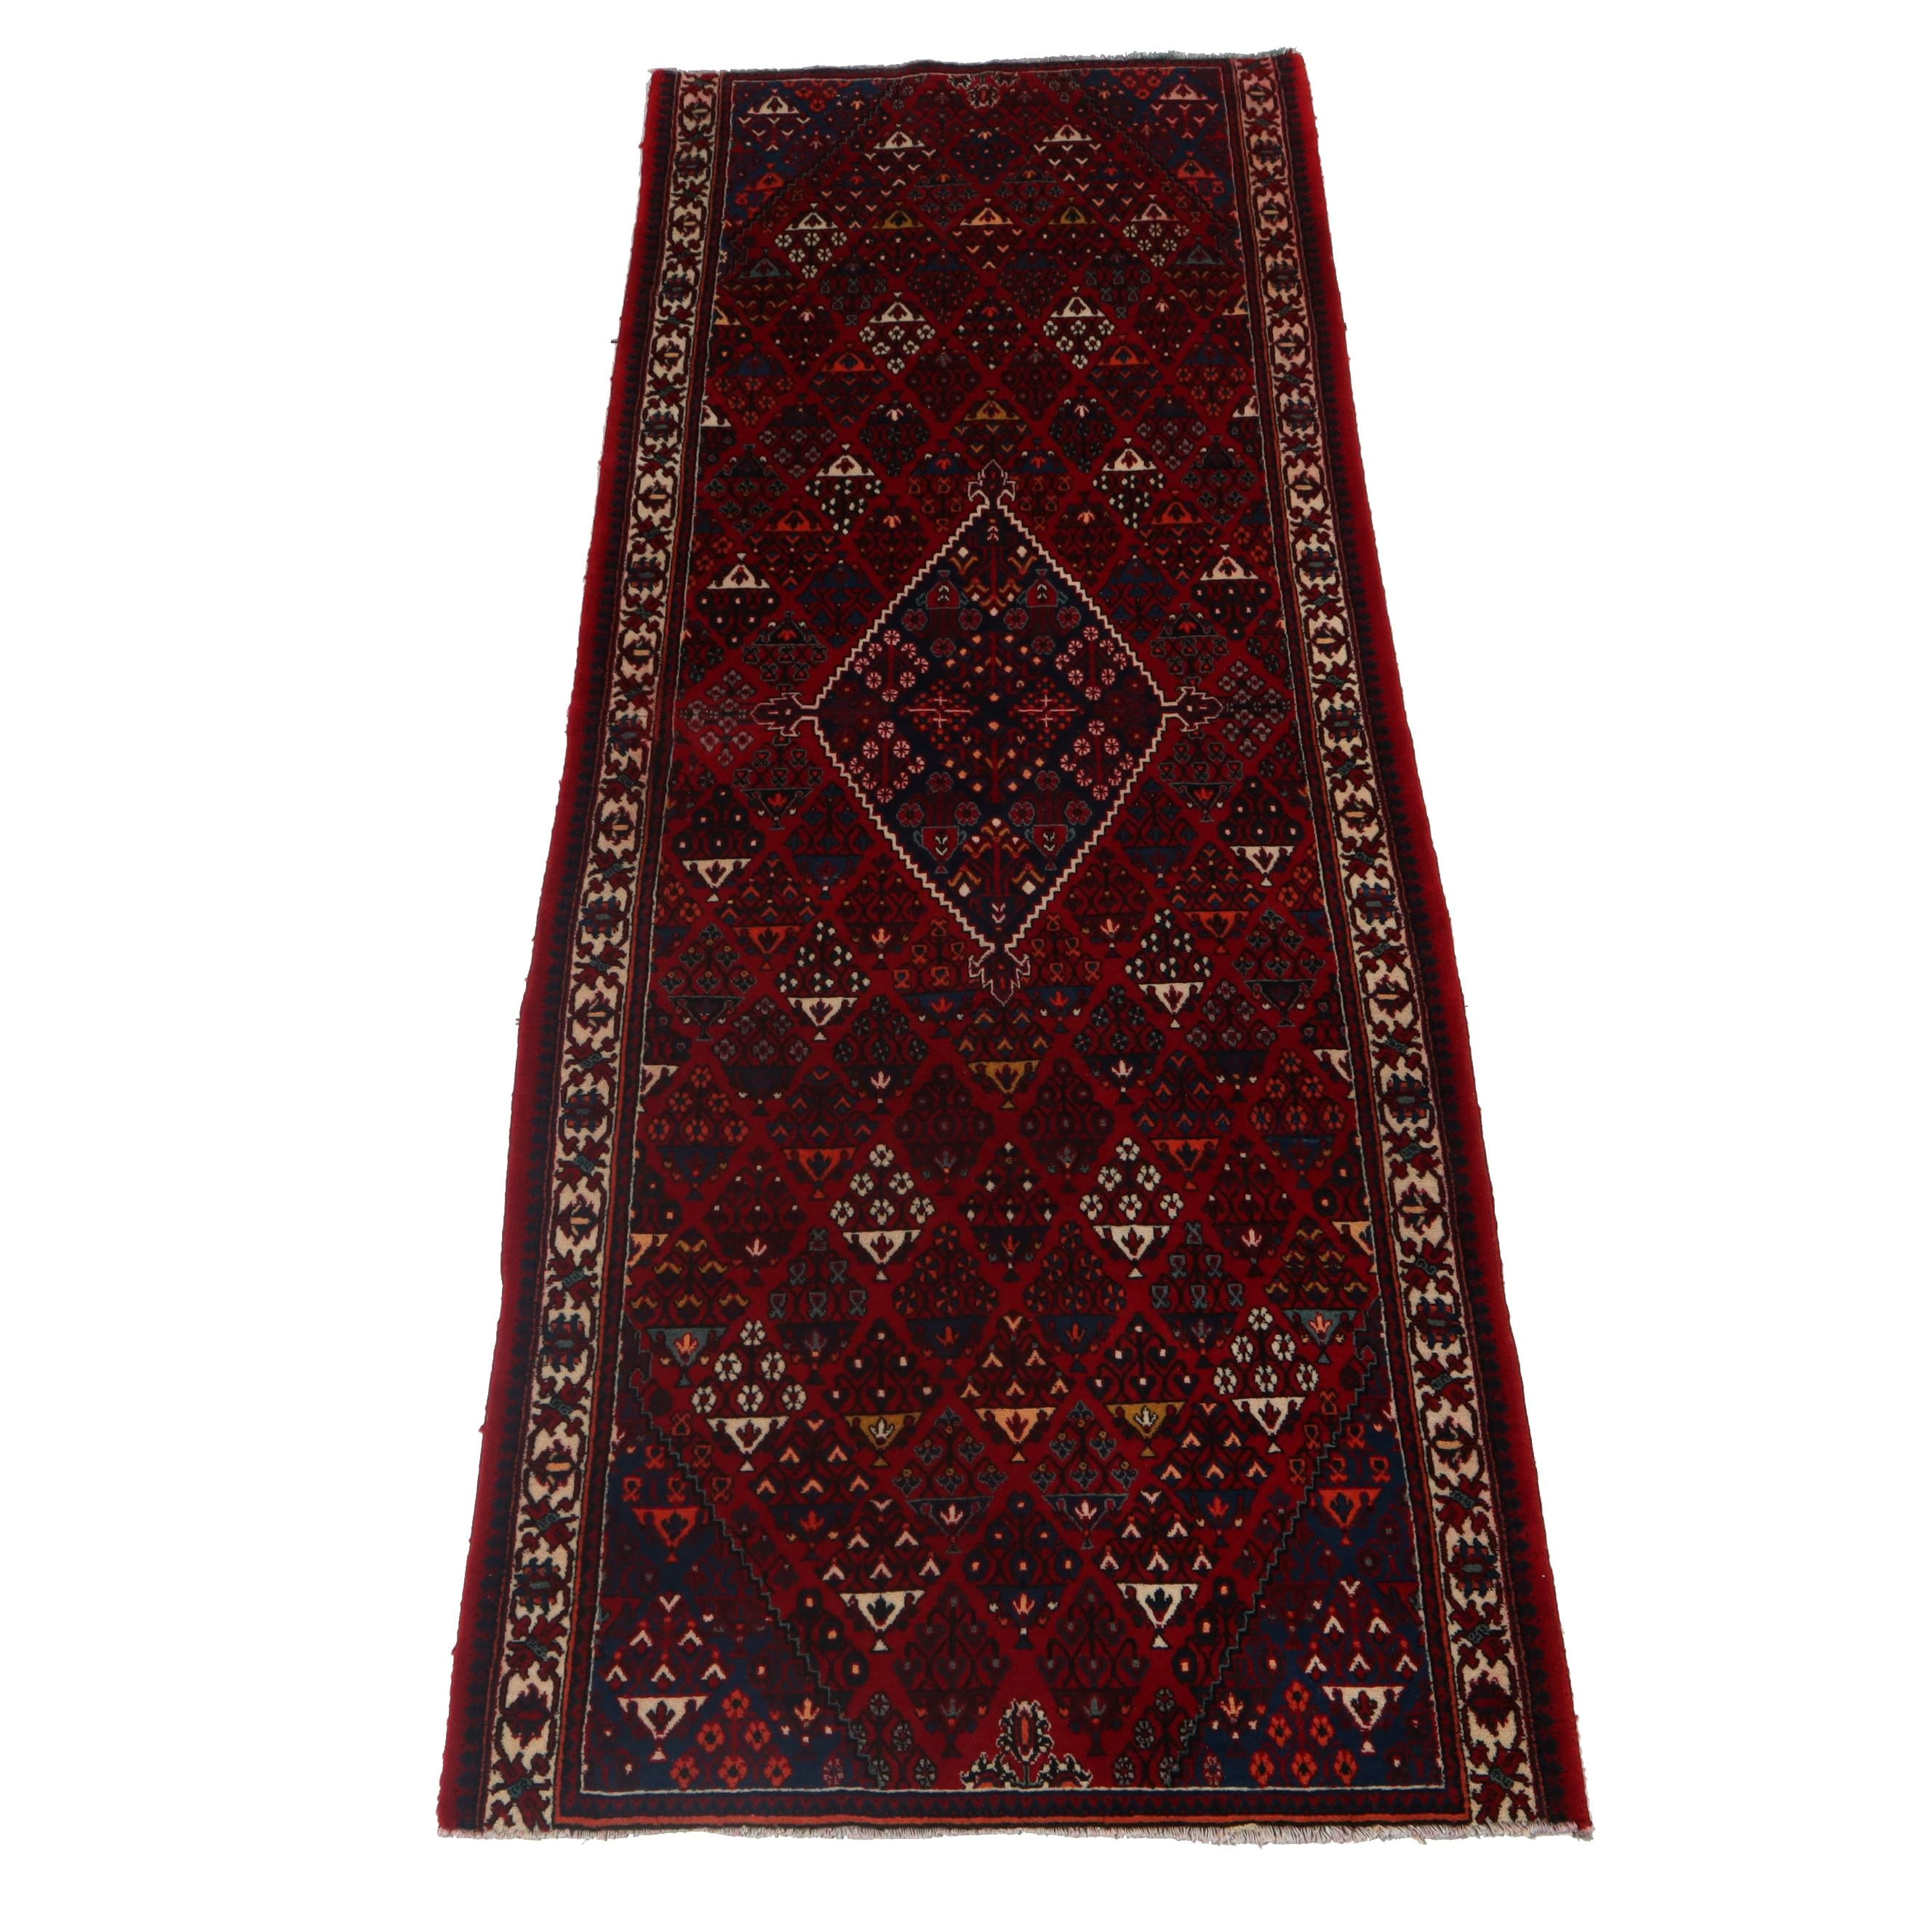 3.9' x 9.5' Hand-Knotted Persian Josheghan Wool Carpet Runner, Circa 1970s